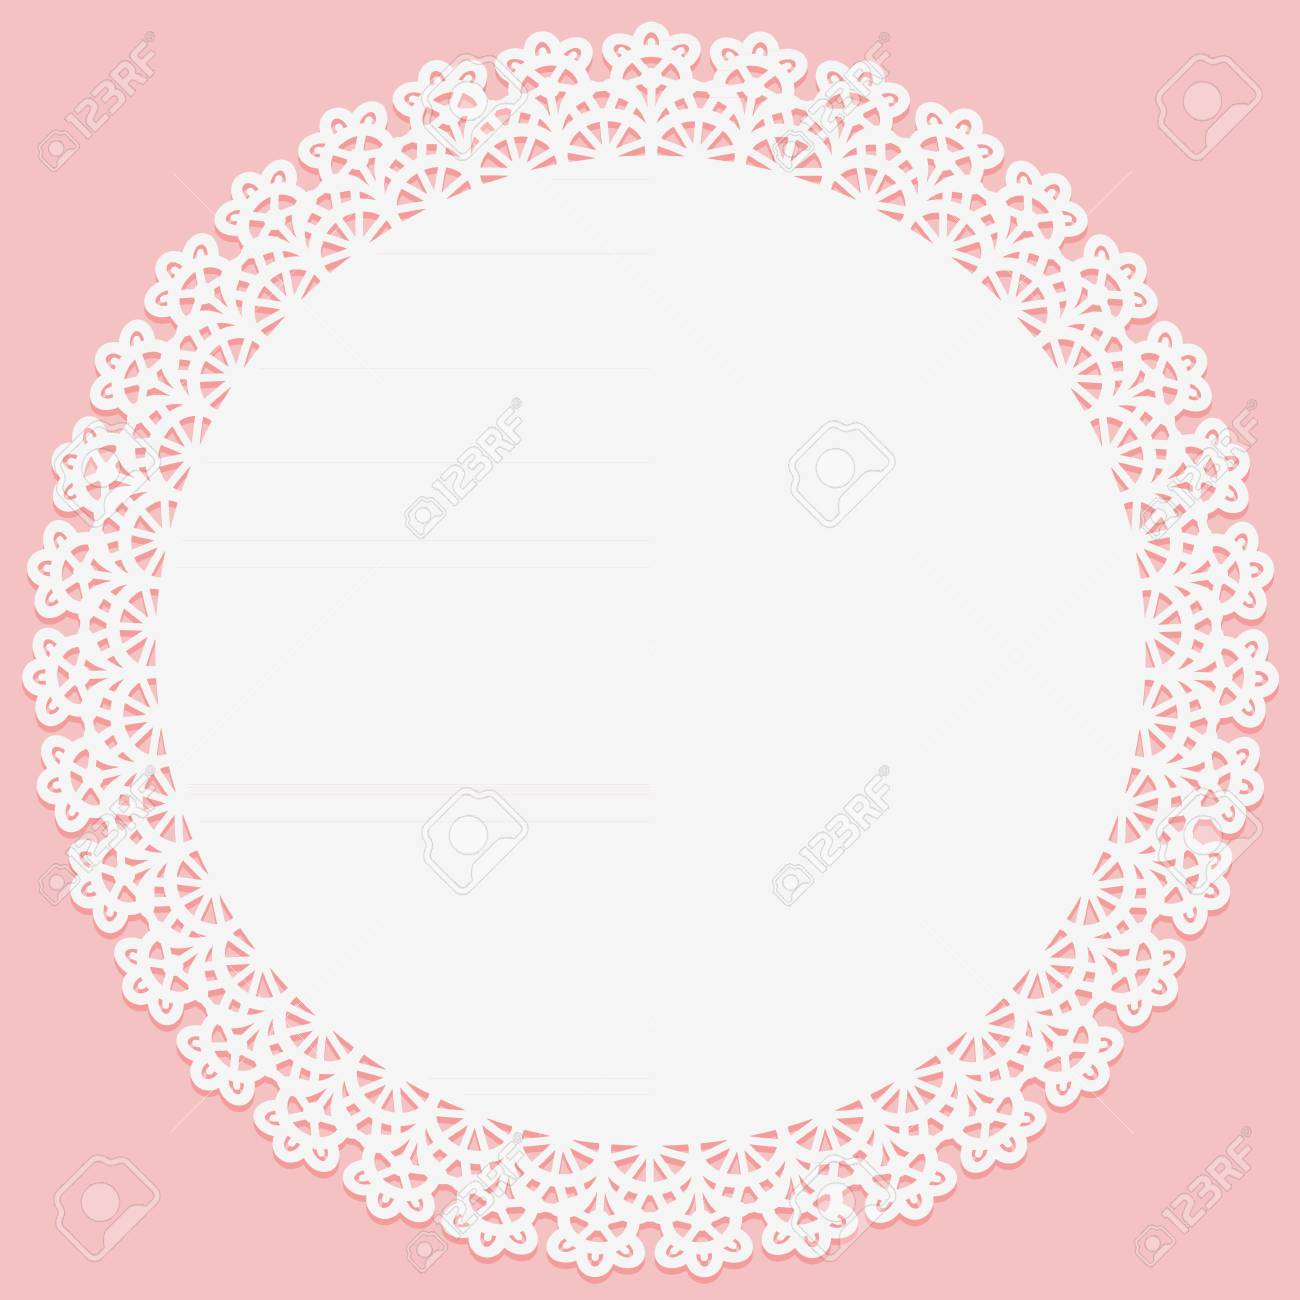 Round doily with lace on the edge on pink background. Slhouette is suitable for laser cutting. Vector illustration - 109933195